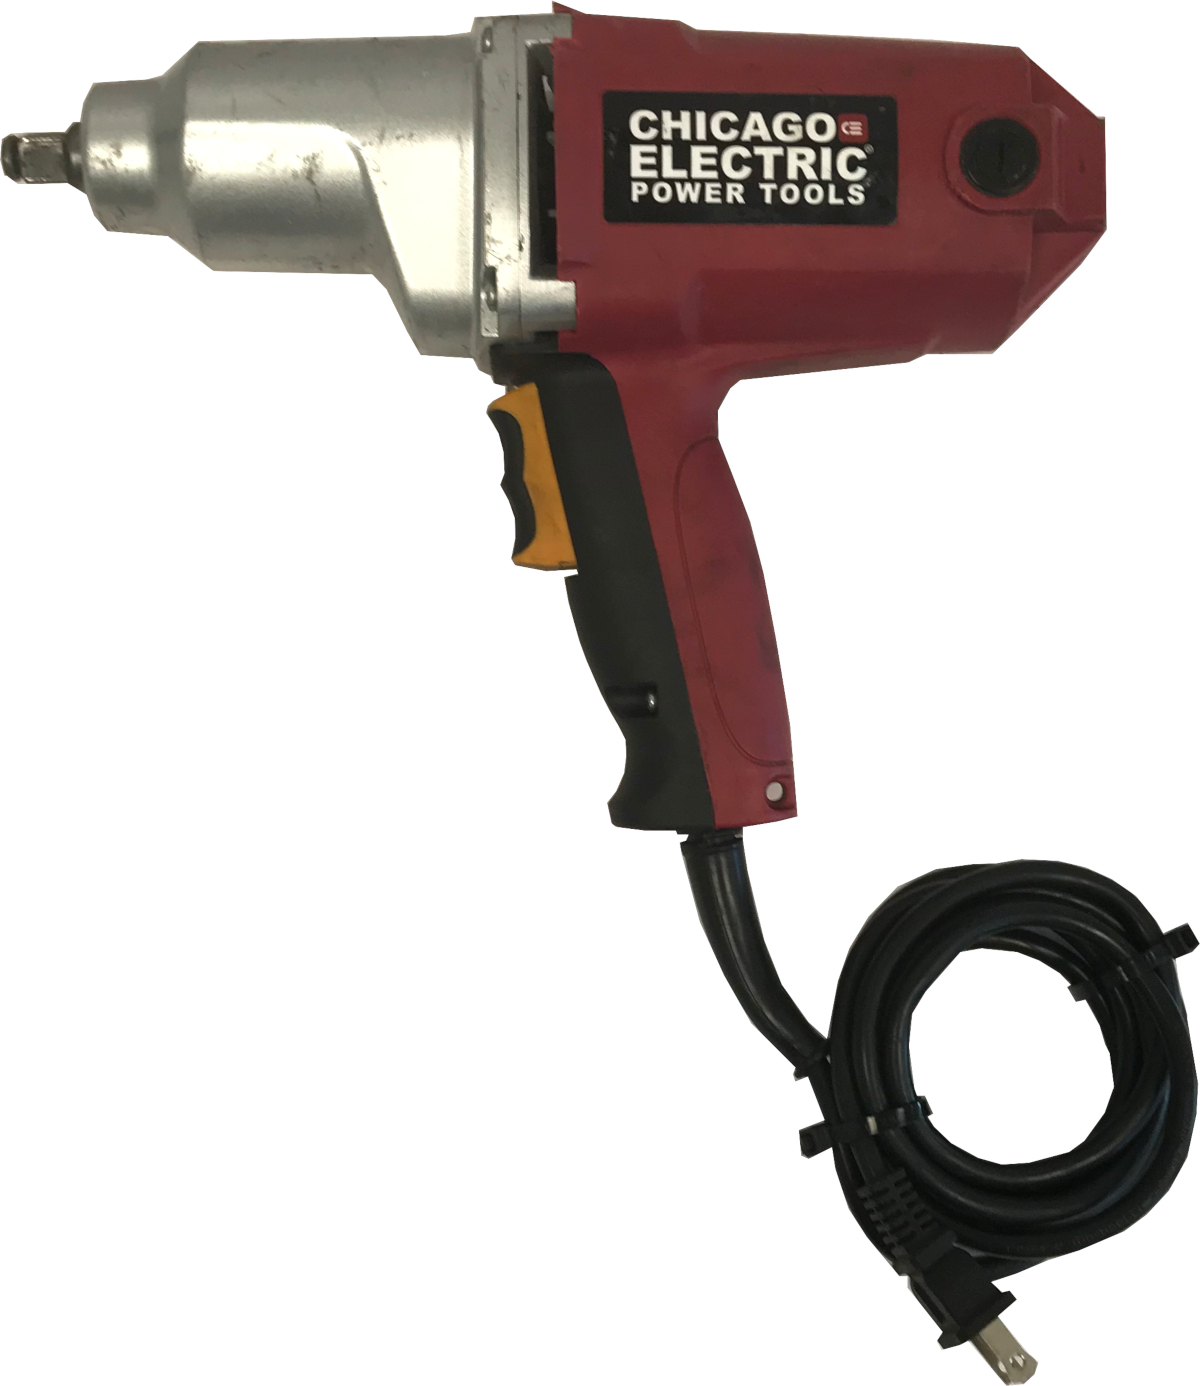 Chicago electric Corded Hand Tools 68099